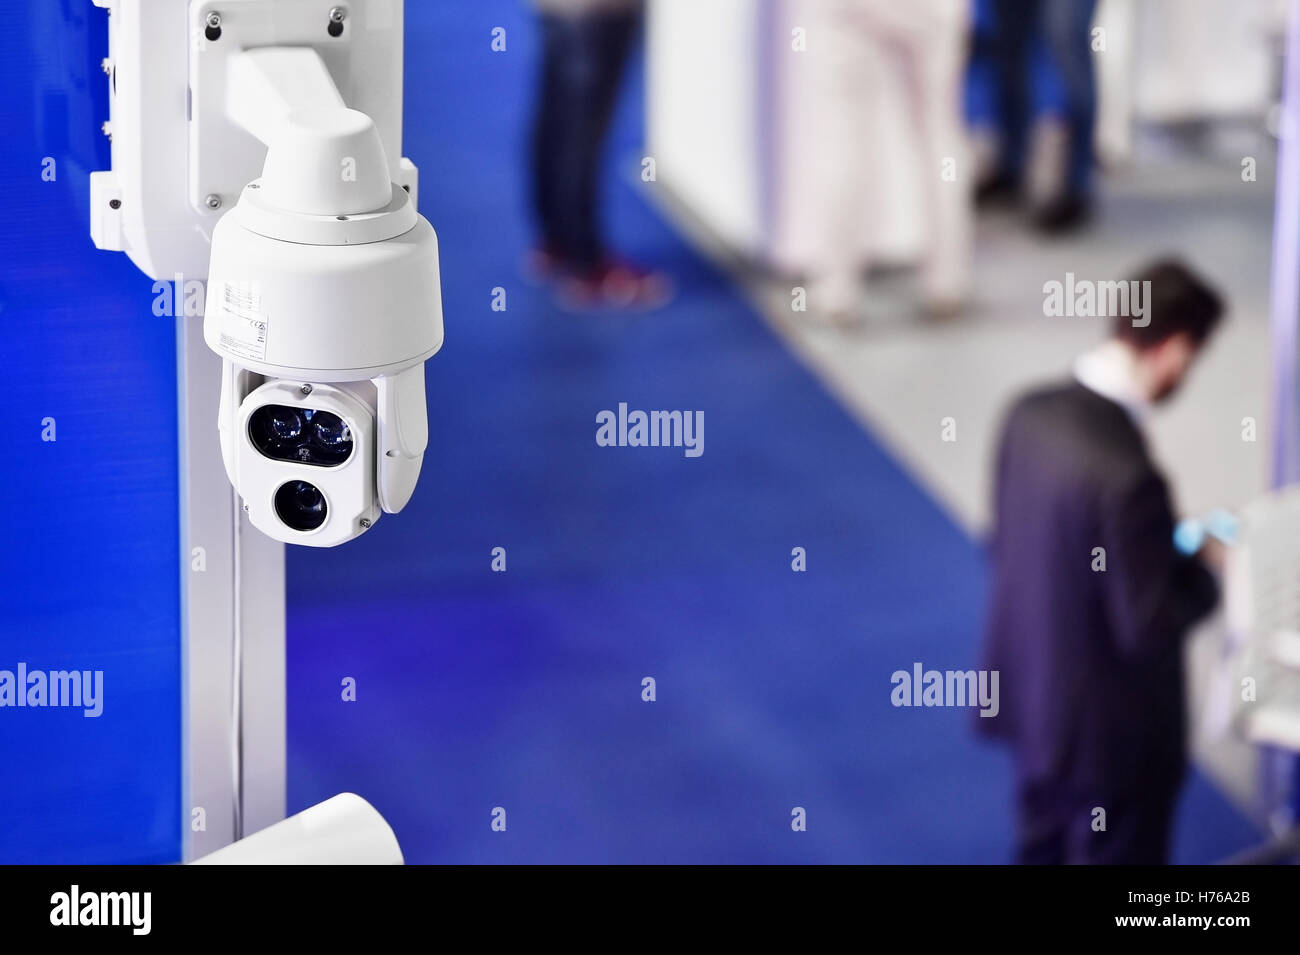 Surveillance camera inside a company with people in the background - Stock Image